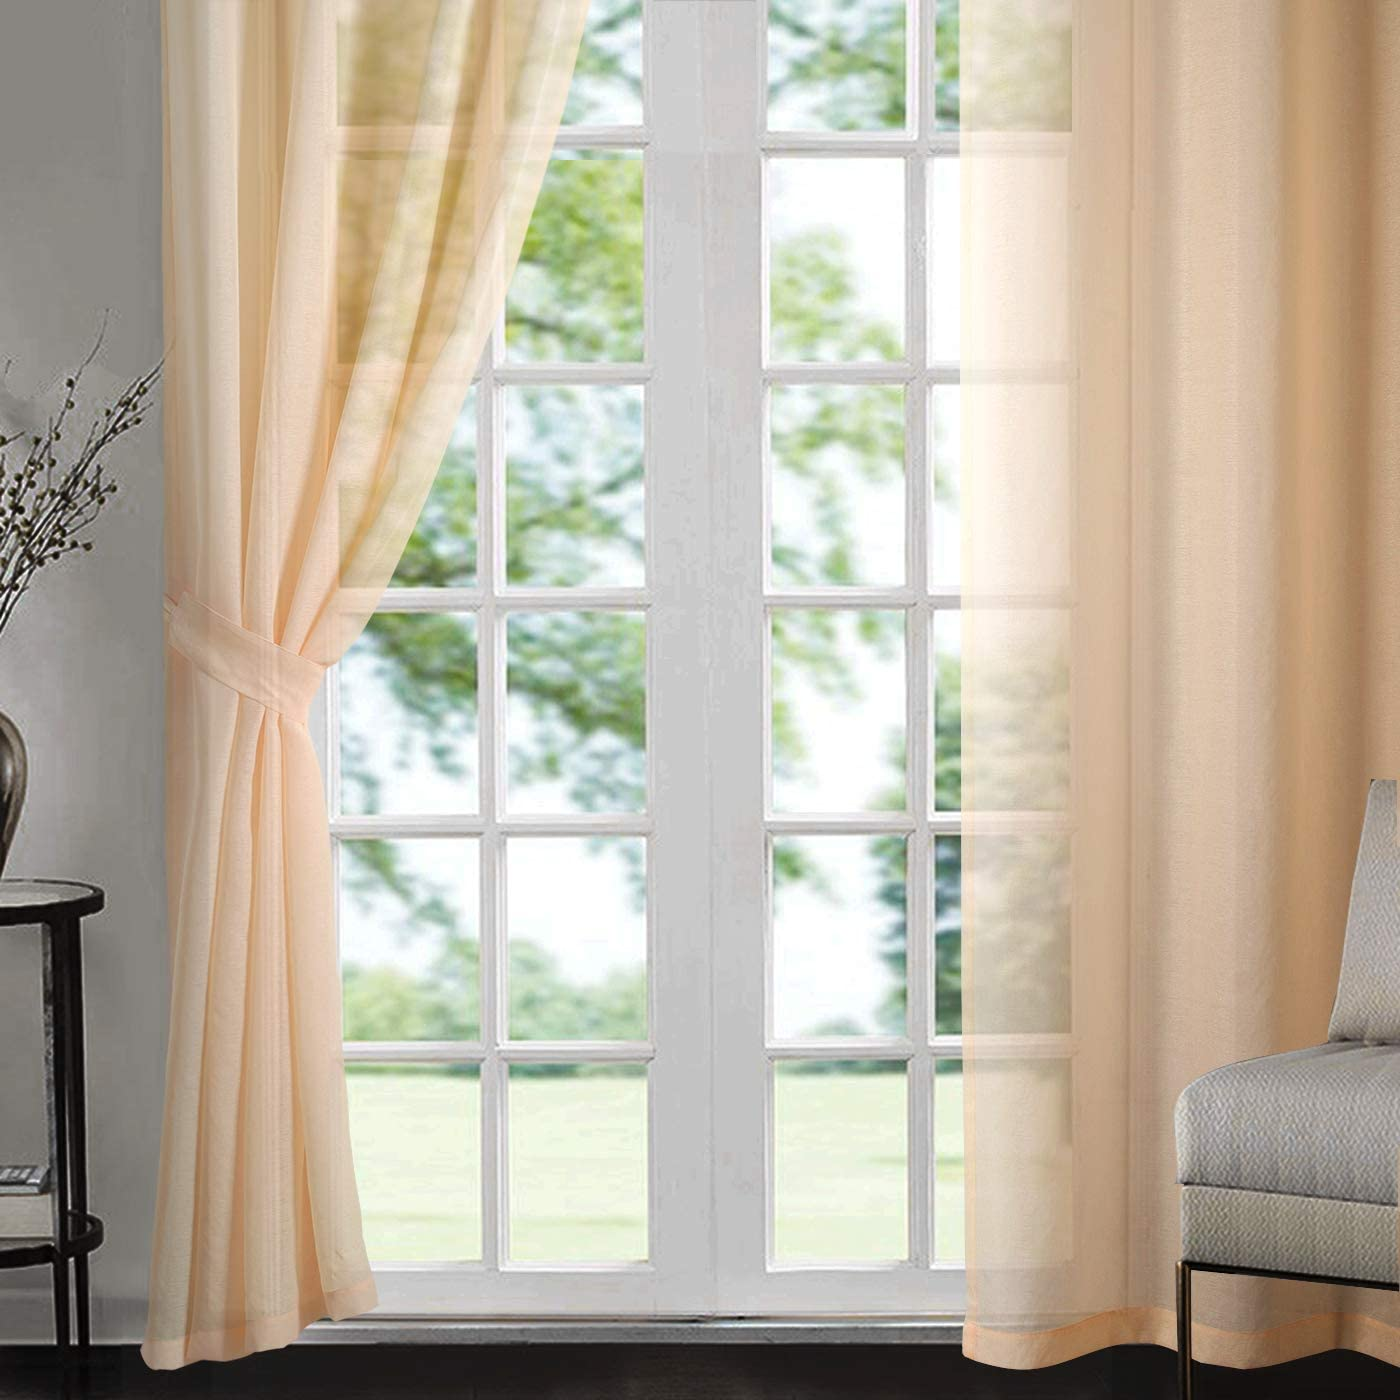 Singinglory Voile Curtains Set of 2 with Tiebacks,Sheer Net Solid Transparent Window Drop (Pale gold/Peach orange,52X90)